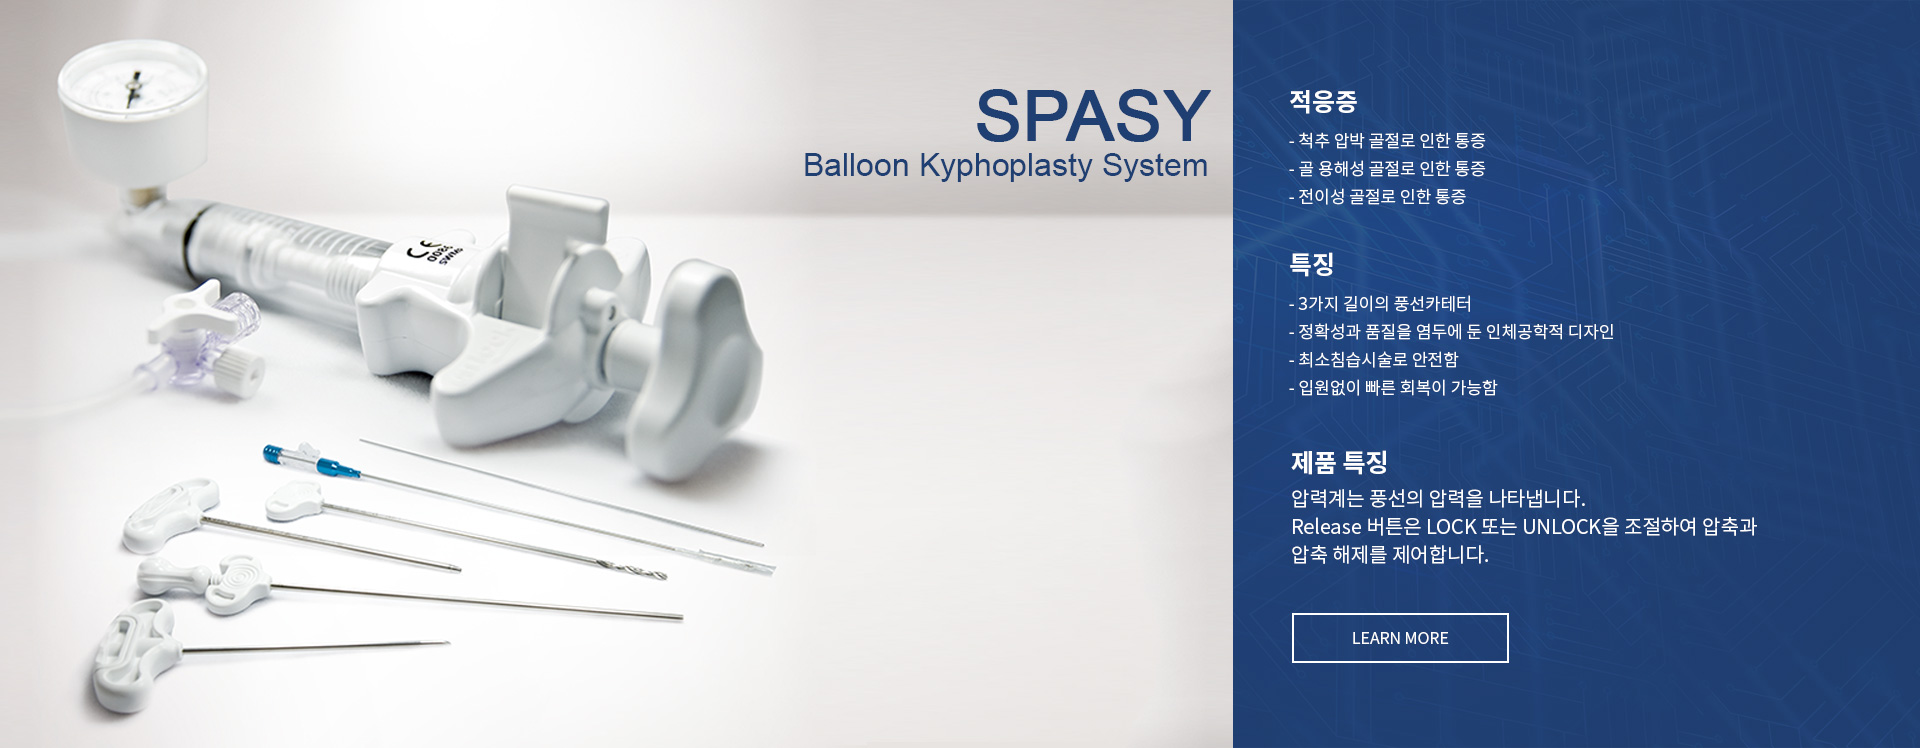 main_spacy-kr-2